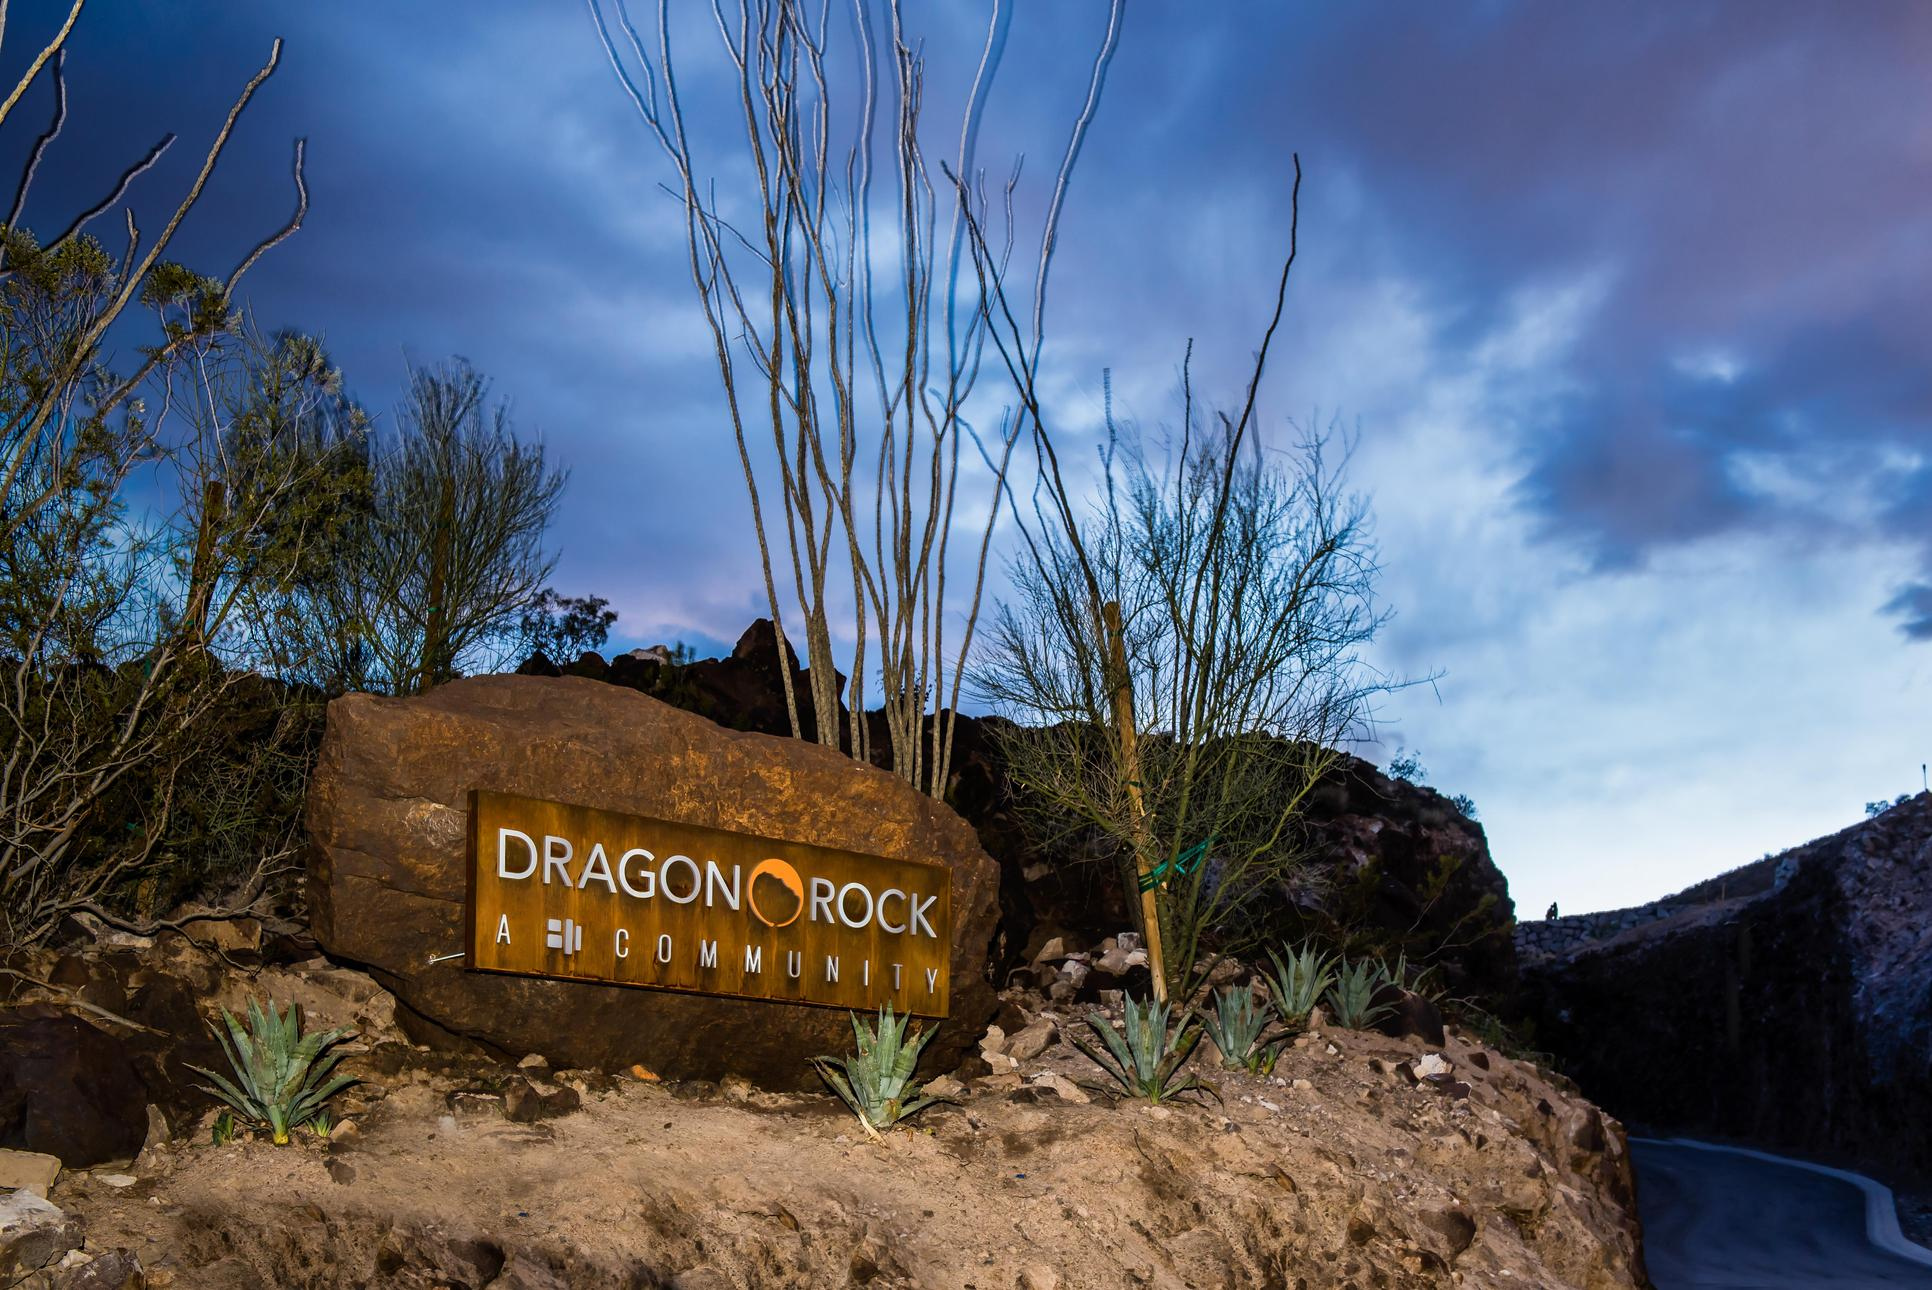 Dragon Rock Community Entrance